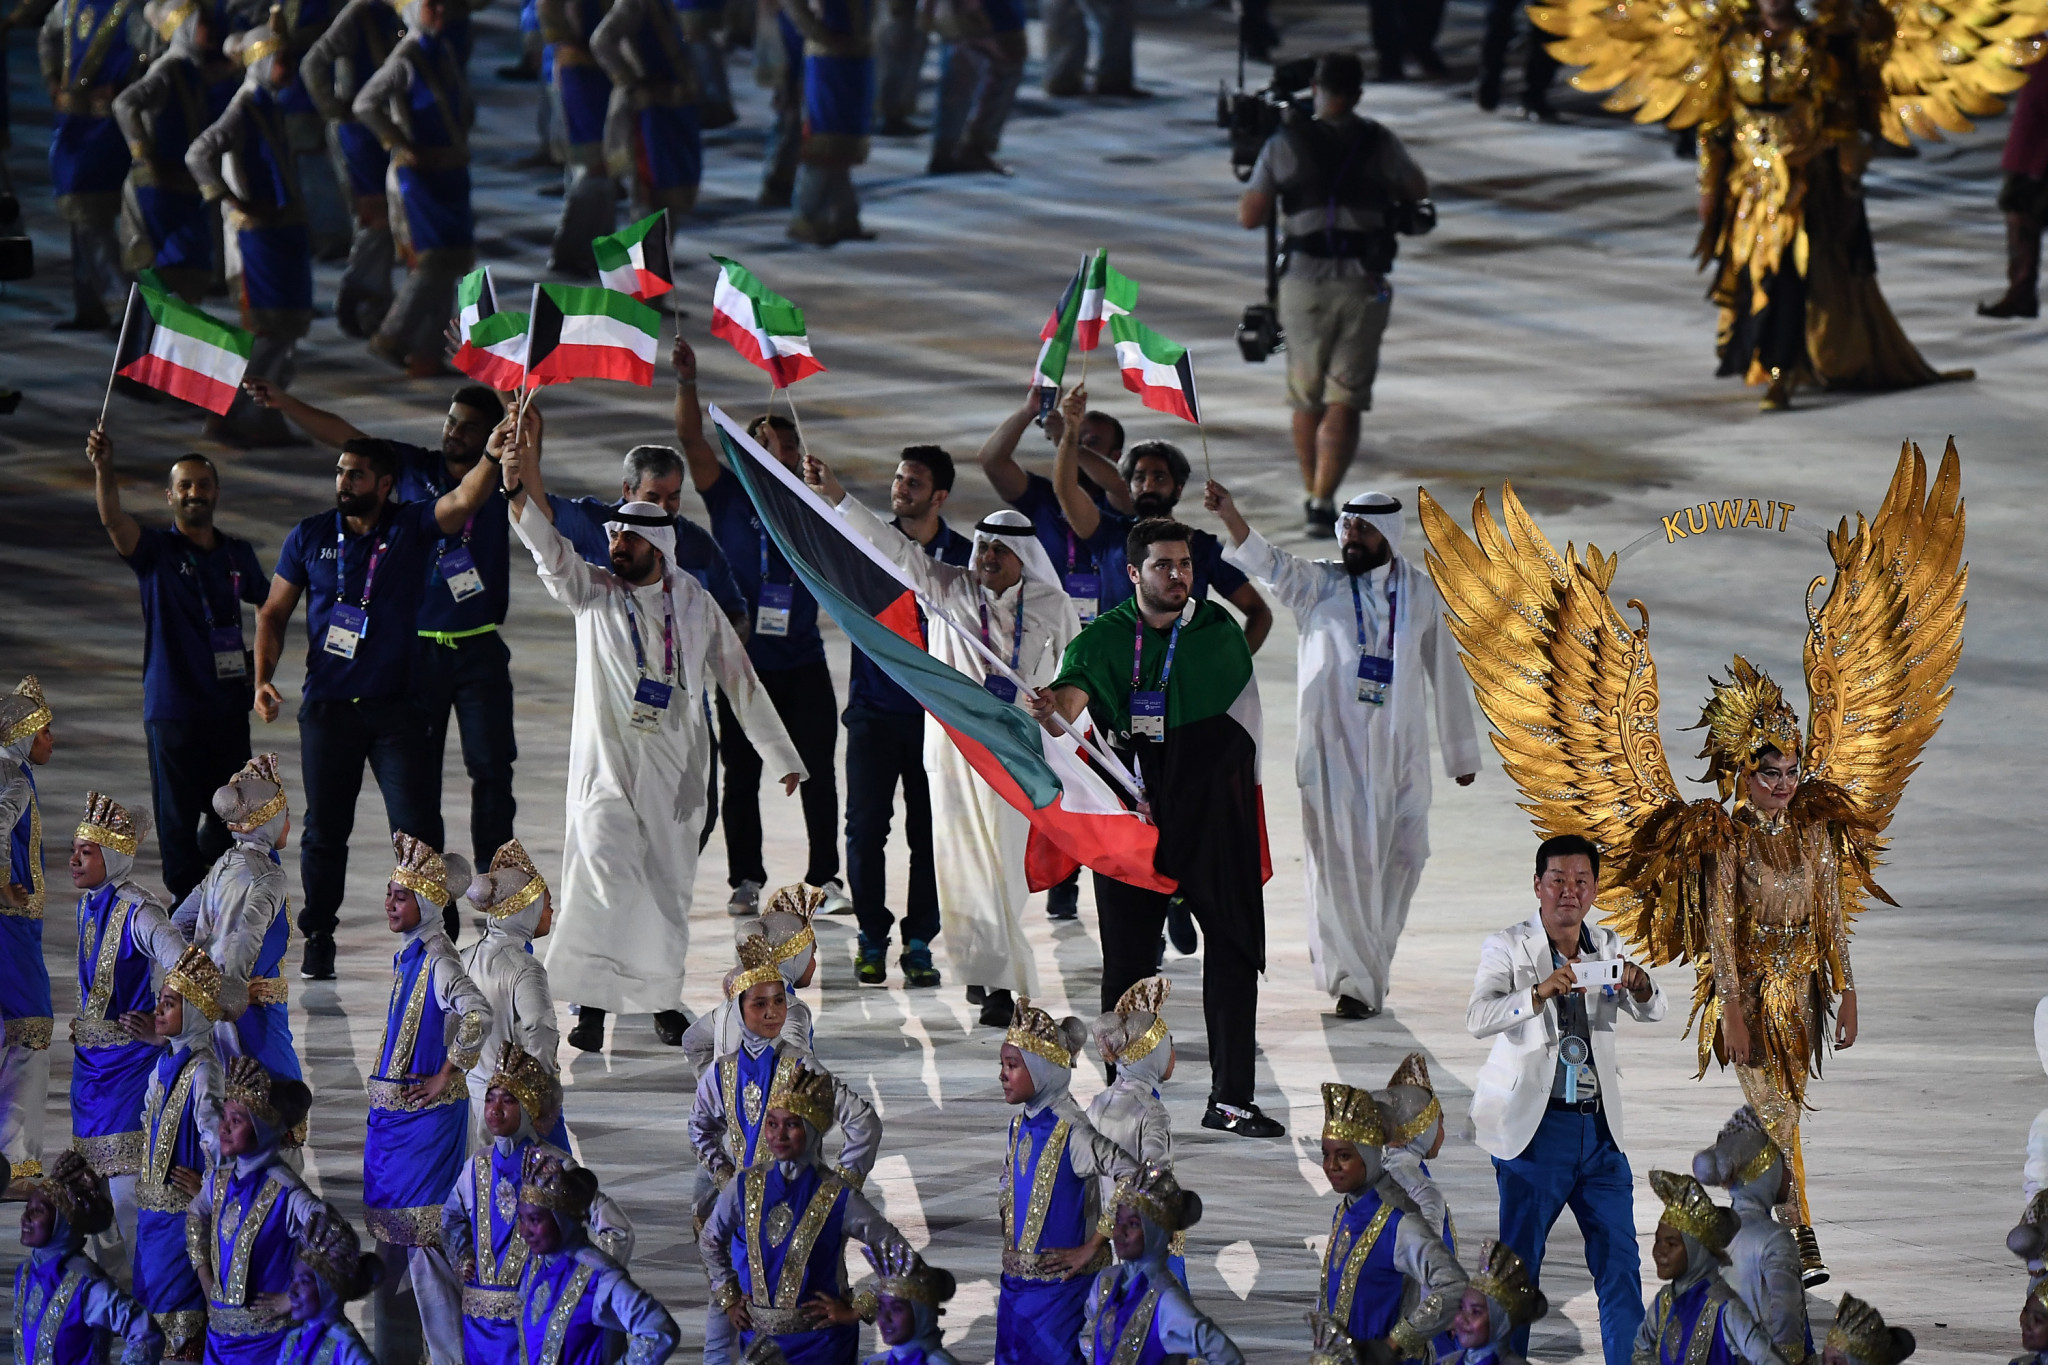 IOC lifts suspension of Kuwait Olympic Committee